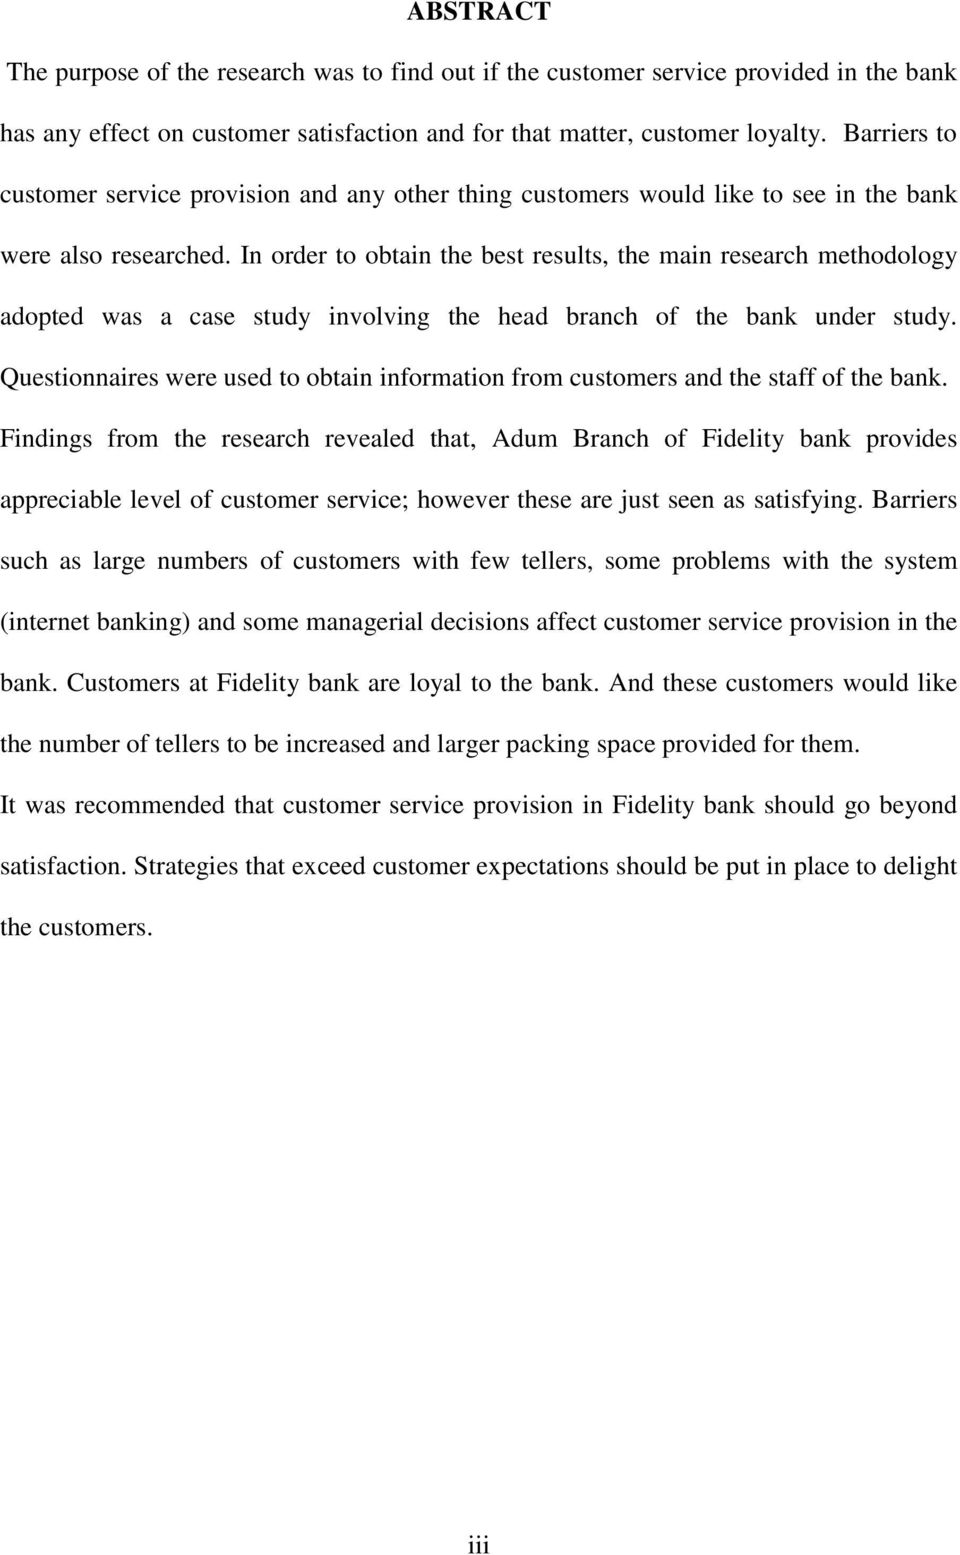 Dissertation Proposal Service On Customer Satisfaction